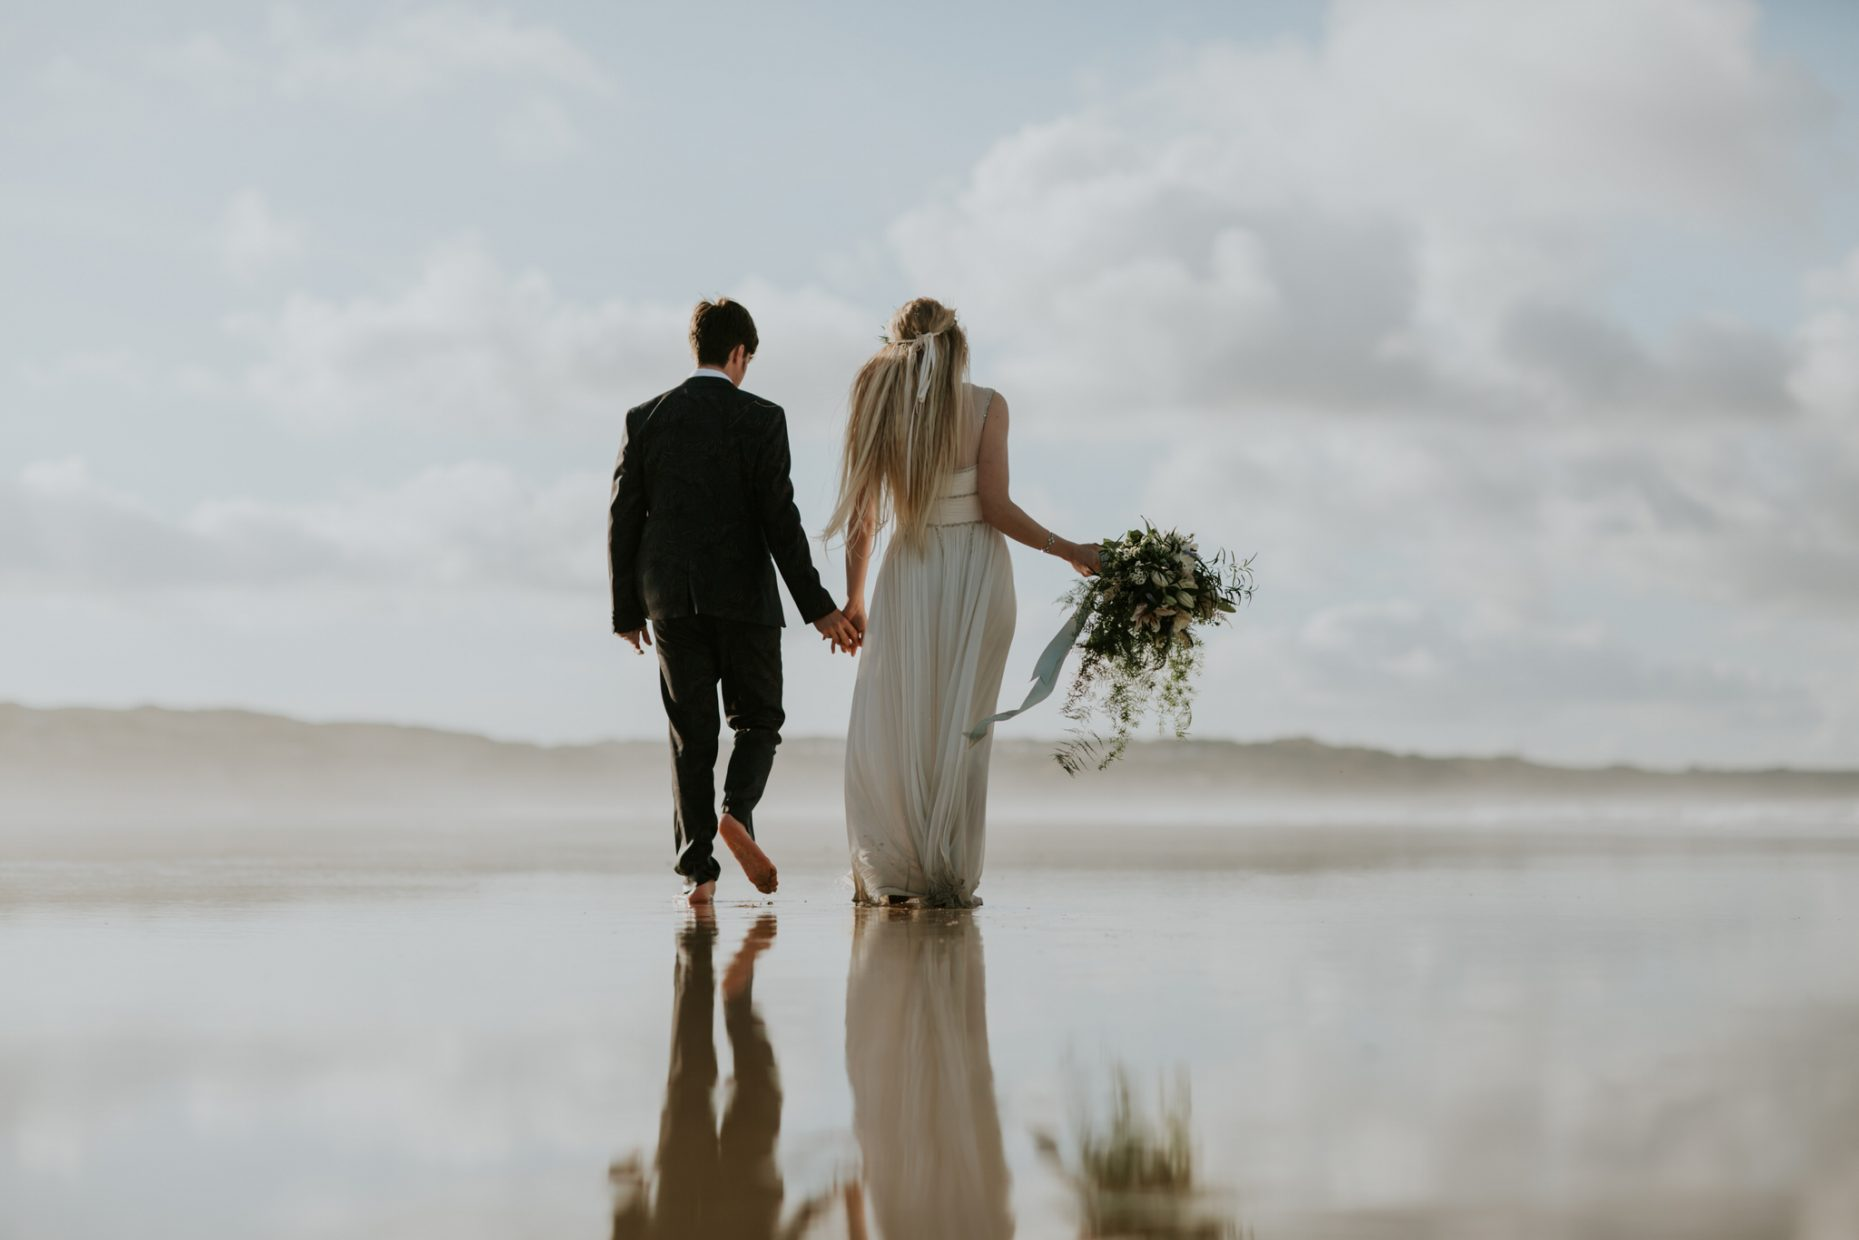 bride and groom walk hand in hand away into a hazy beach setting as their reflections can be seen in the sand. The bride holds wild flowers in her hand